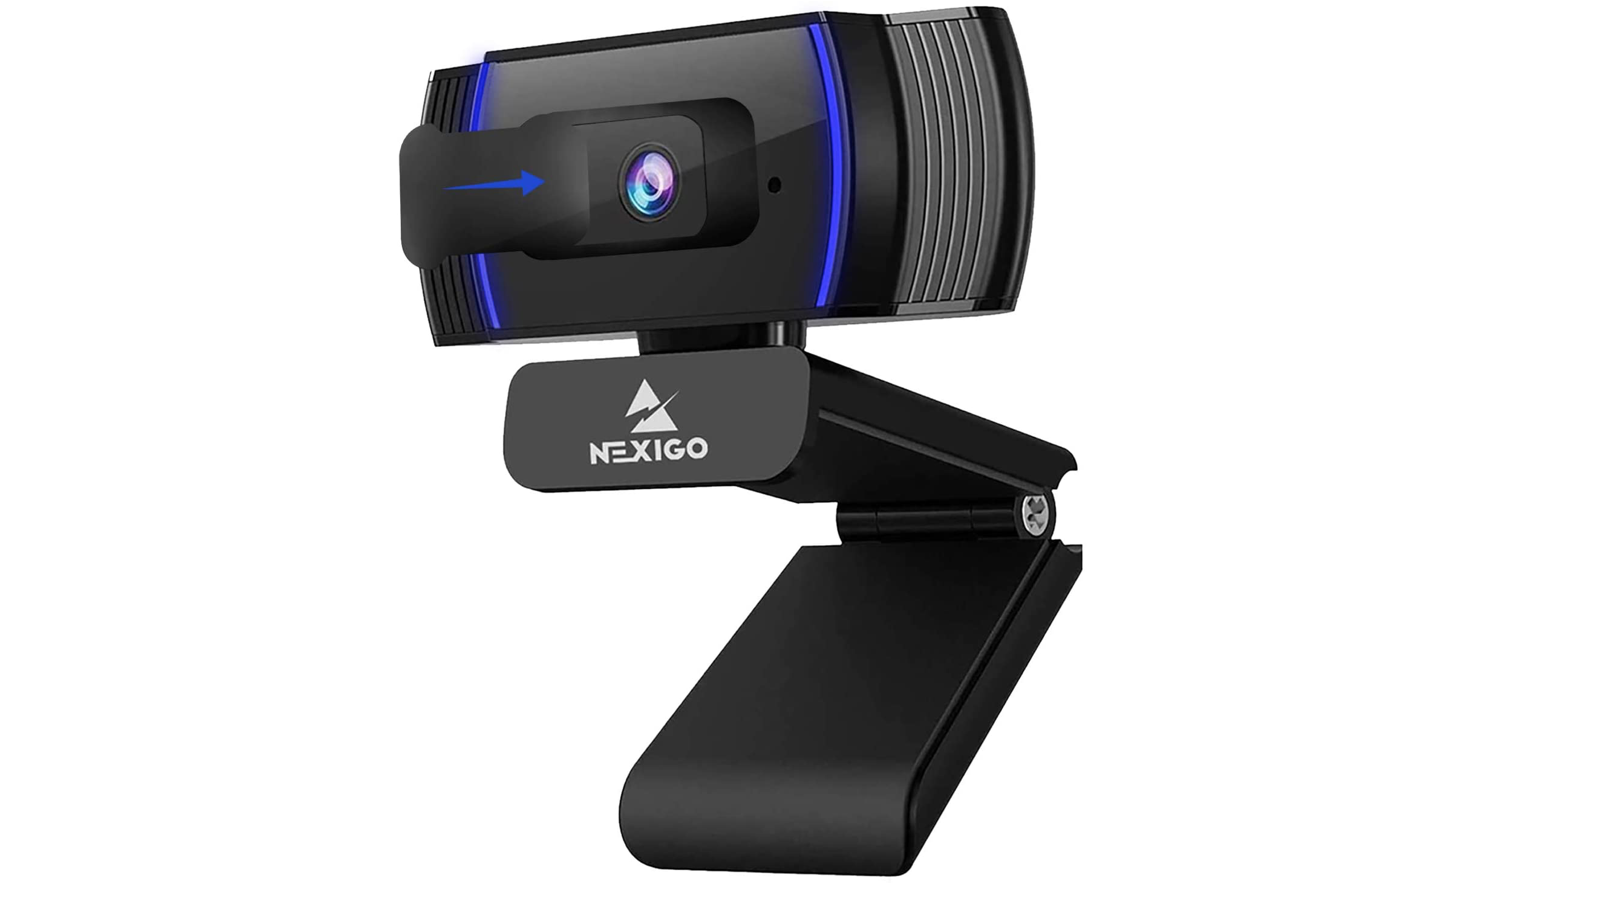 rectangular black webcam with blue accents on a black clip